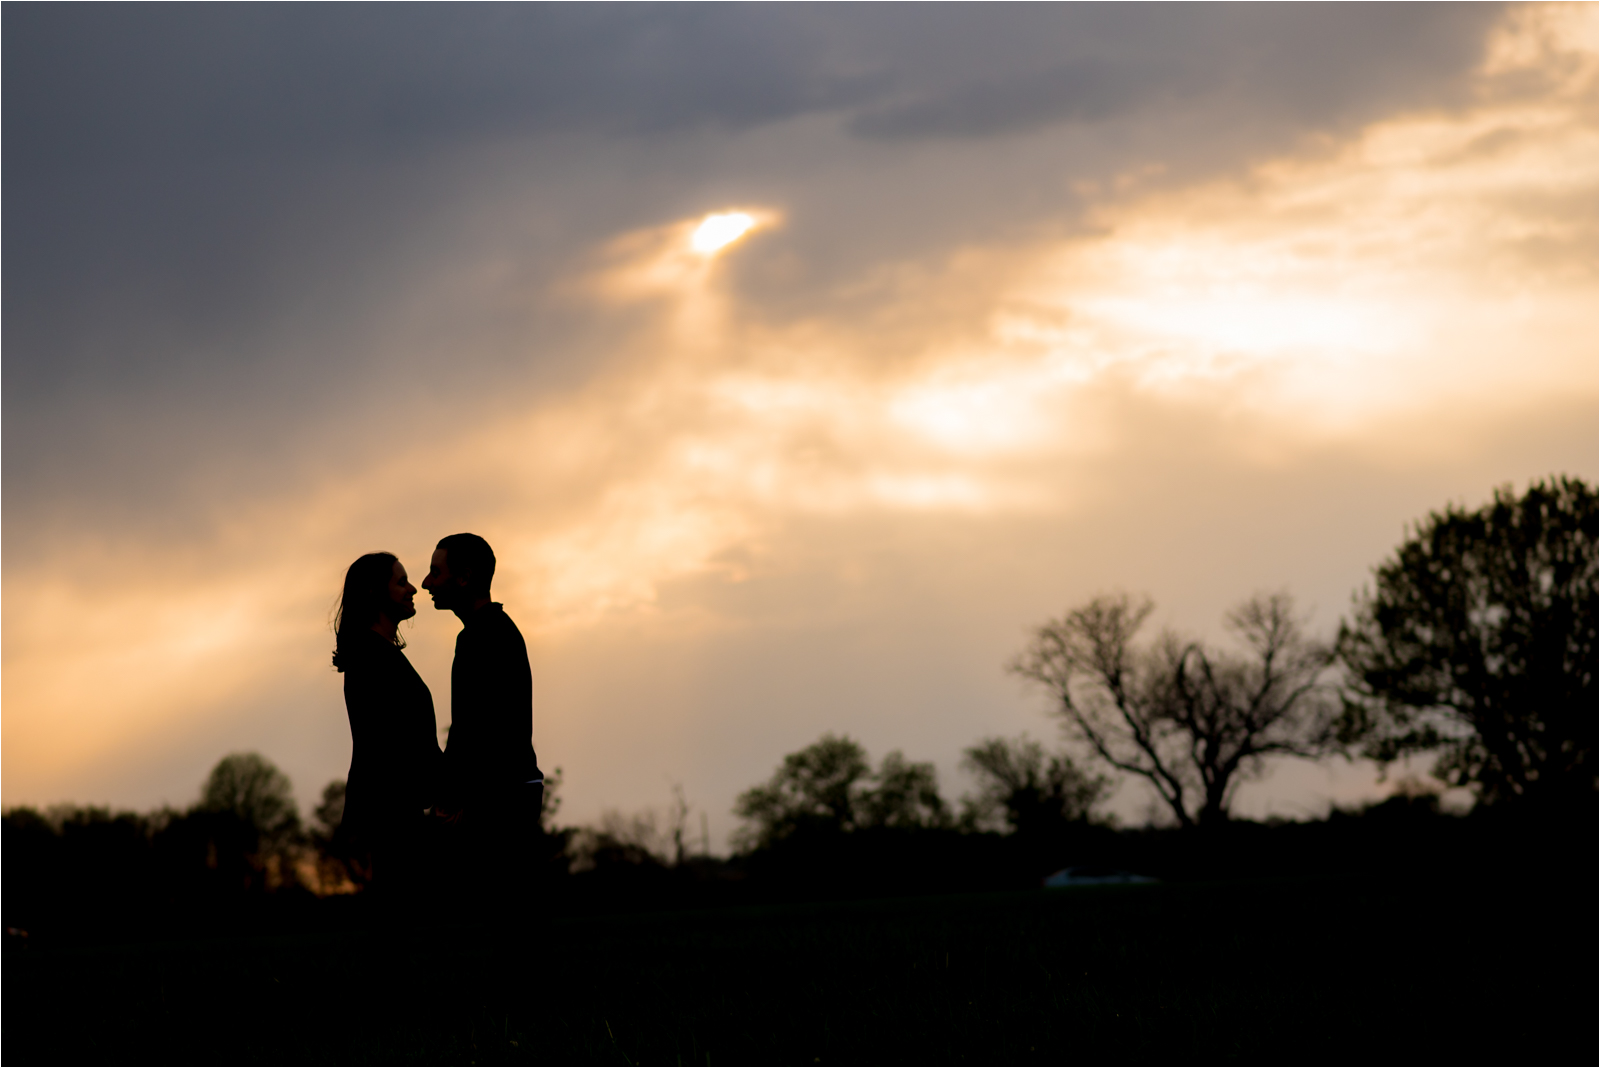 engagement-photography-session-focus-on-joy-photography-jessica-capozzola-gravelly-point-park-washington-dc-maroon-checkered-shirt-navy-sweater-husband-wife-fiance-engaged-couple-sunset-silhouette